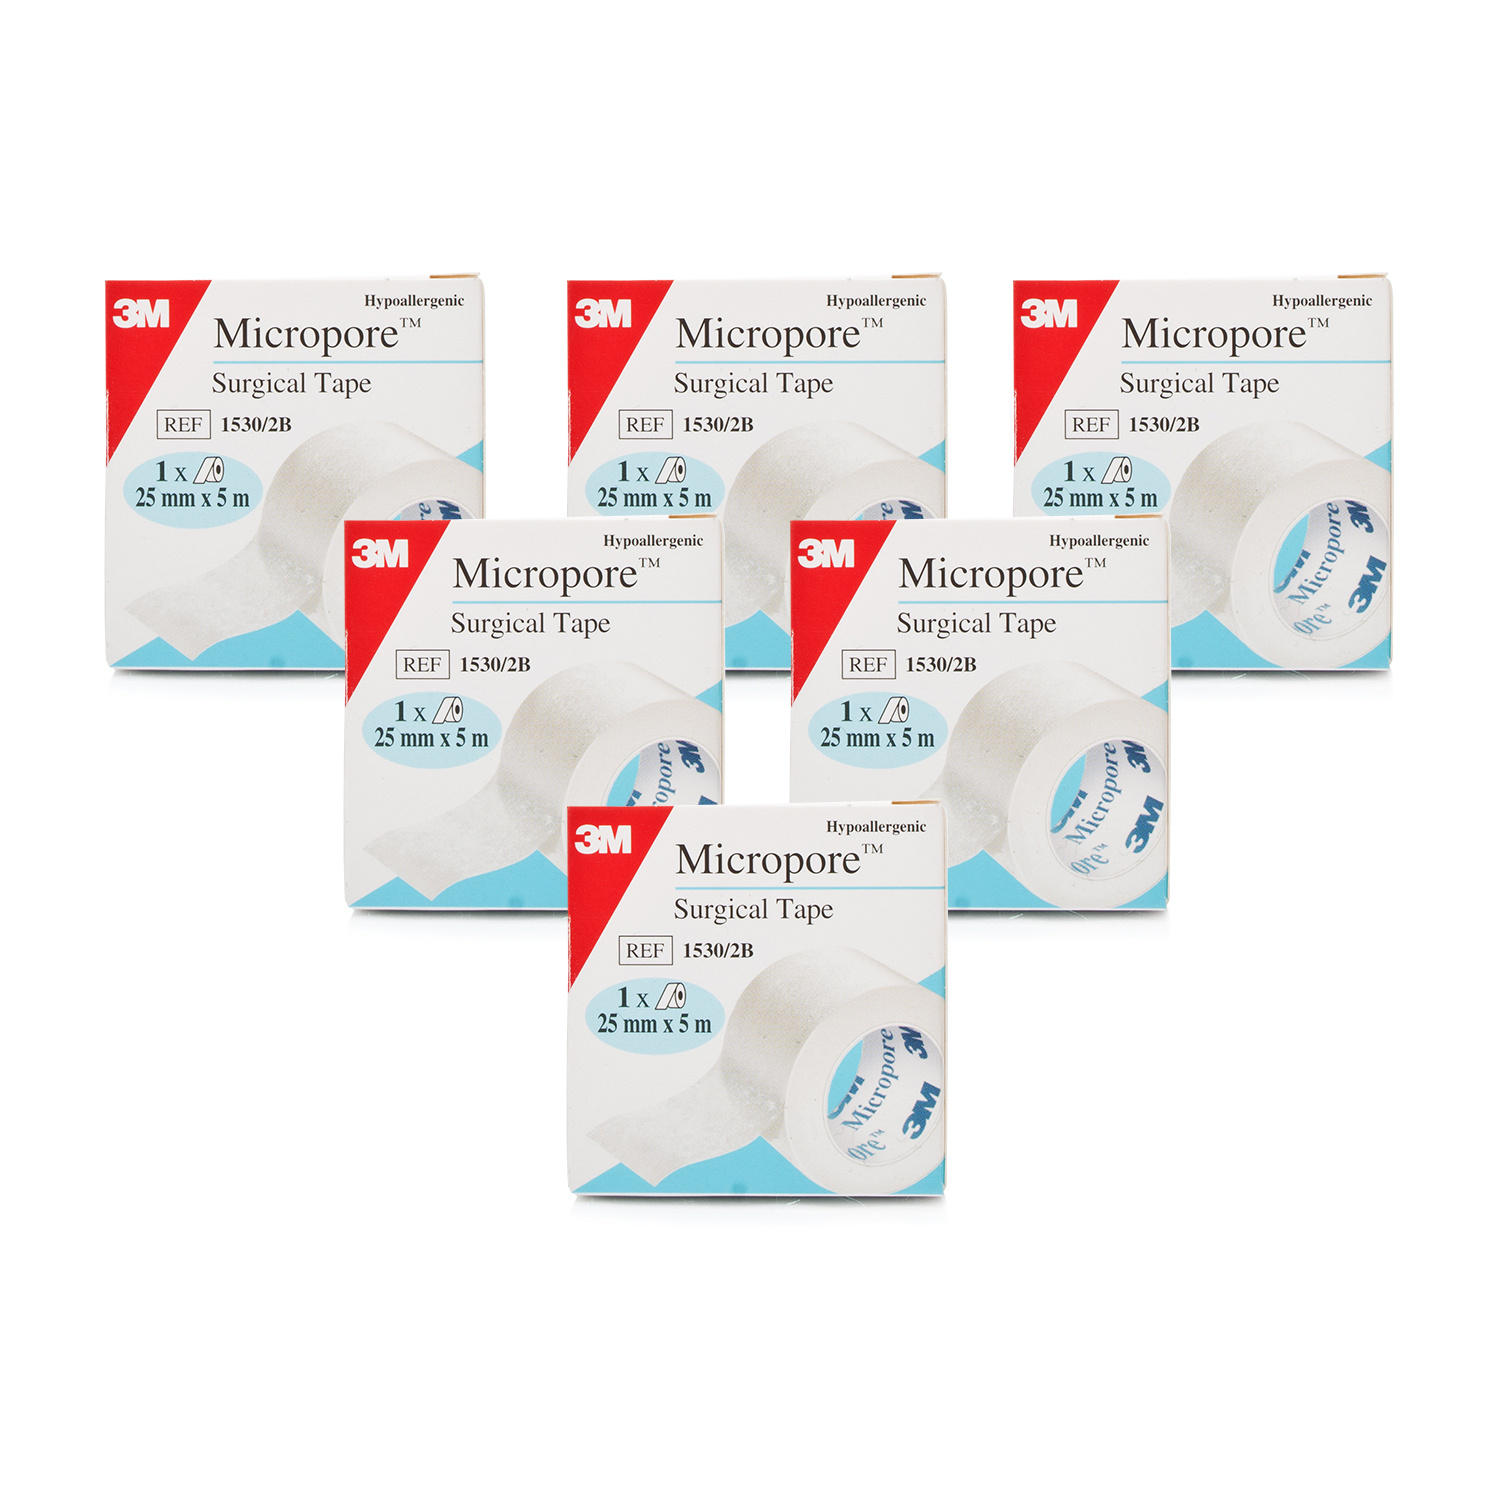 Stockists of 3M Micropore Surgical Tape - 6 Pack